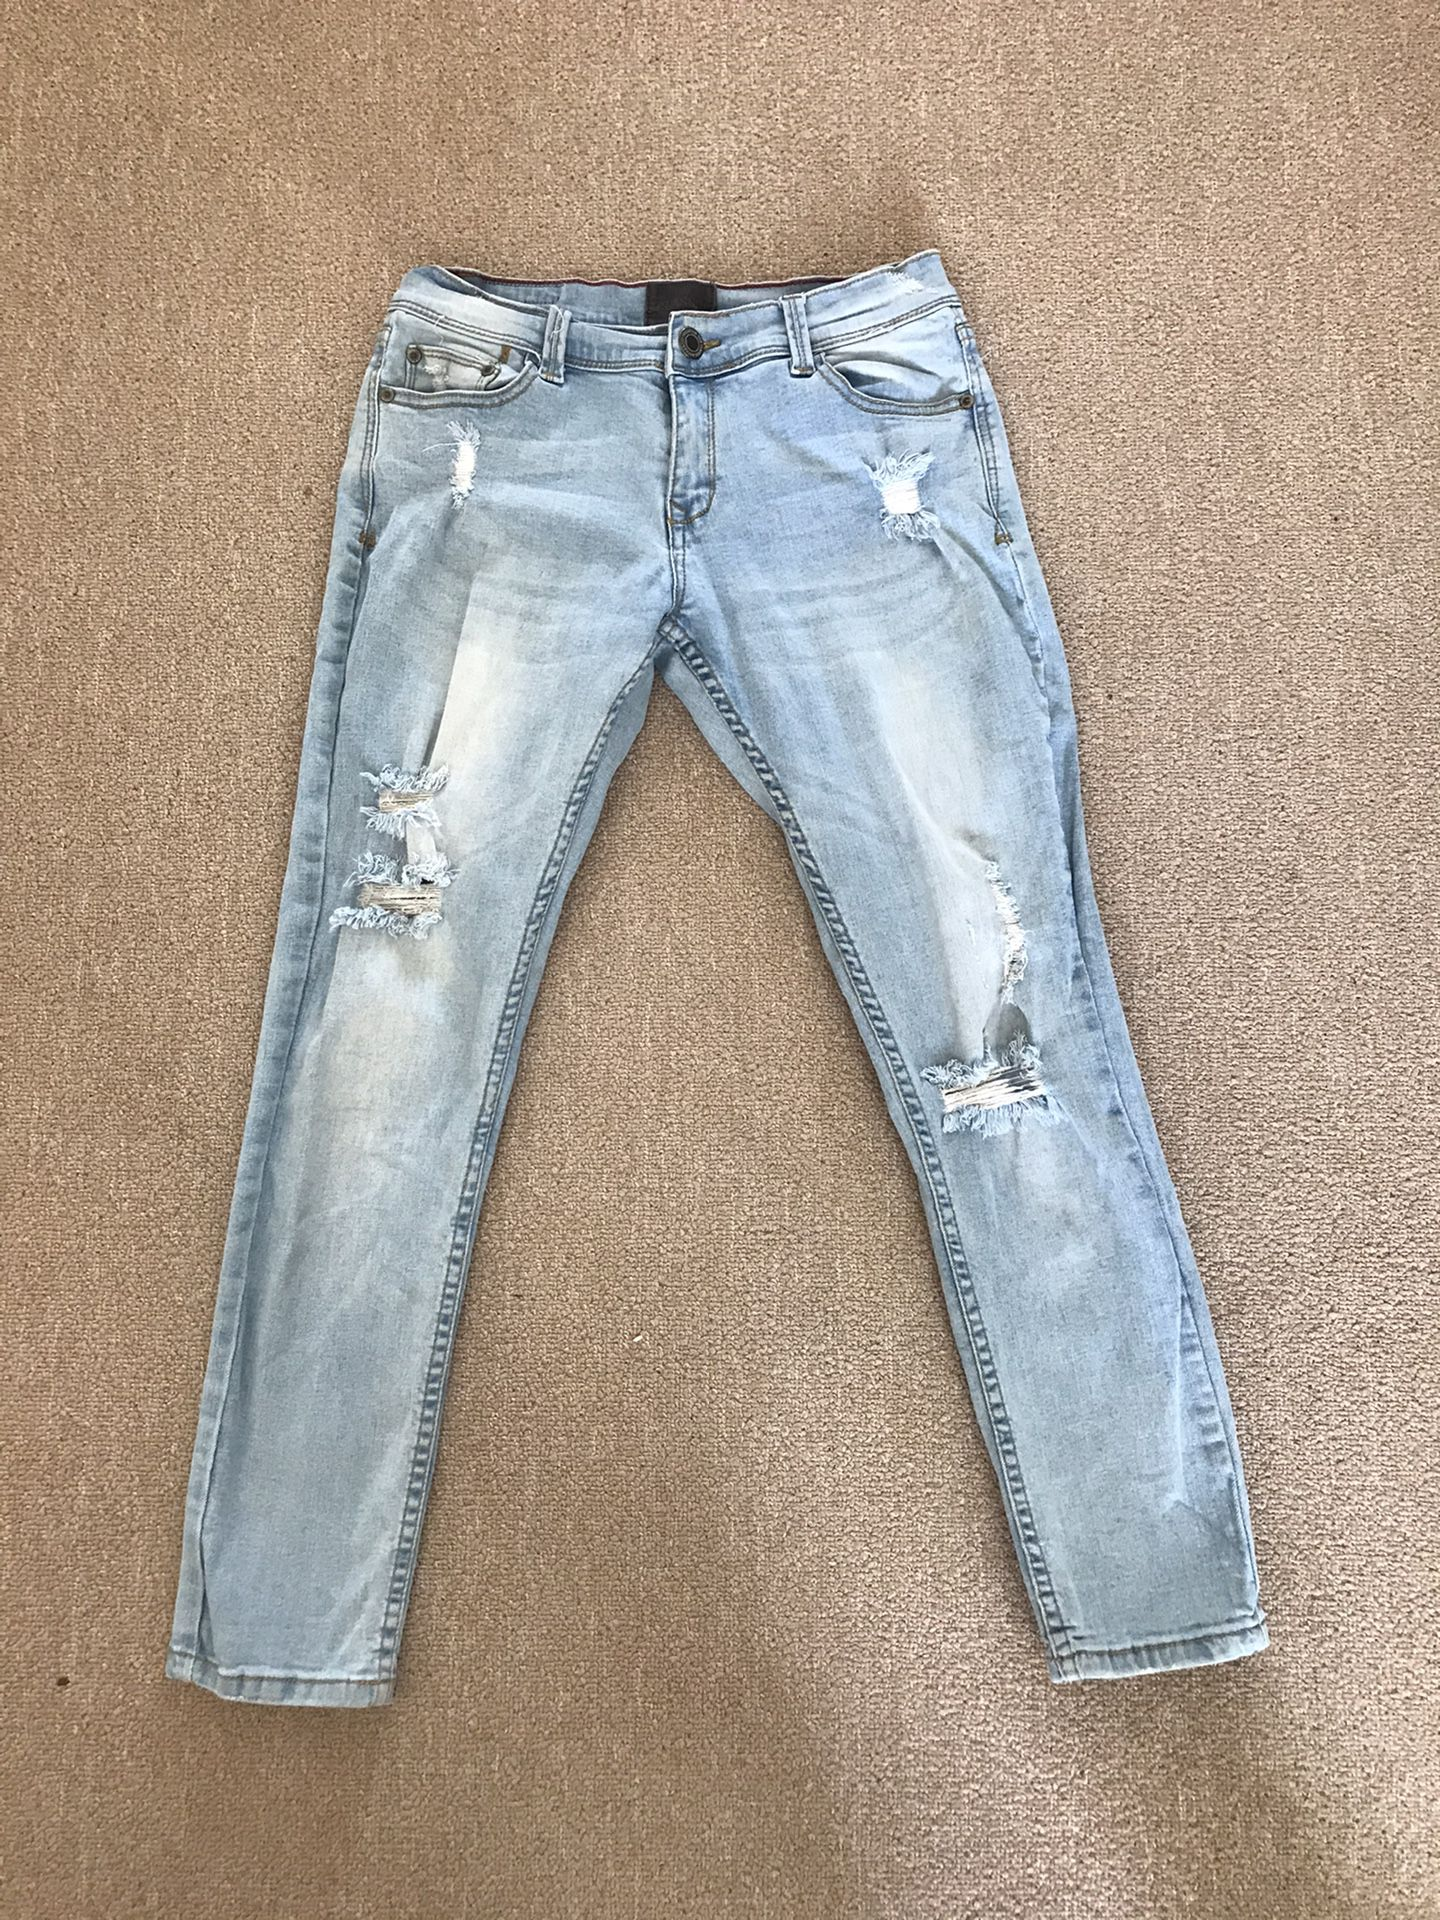 Size 3 Denim Ripped Jeans